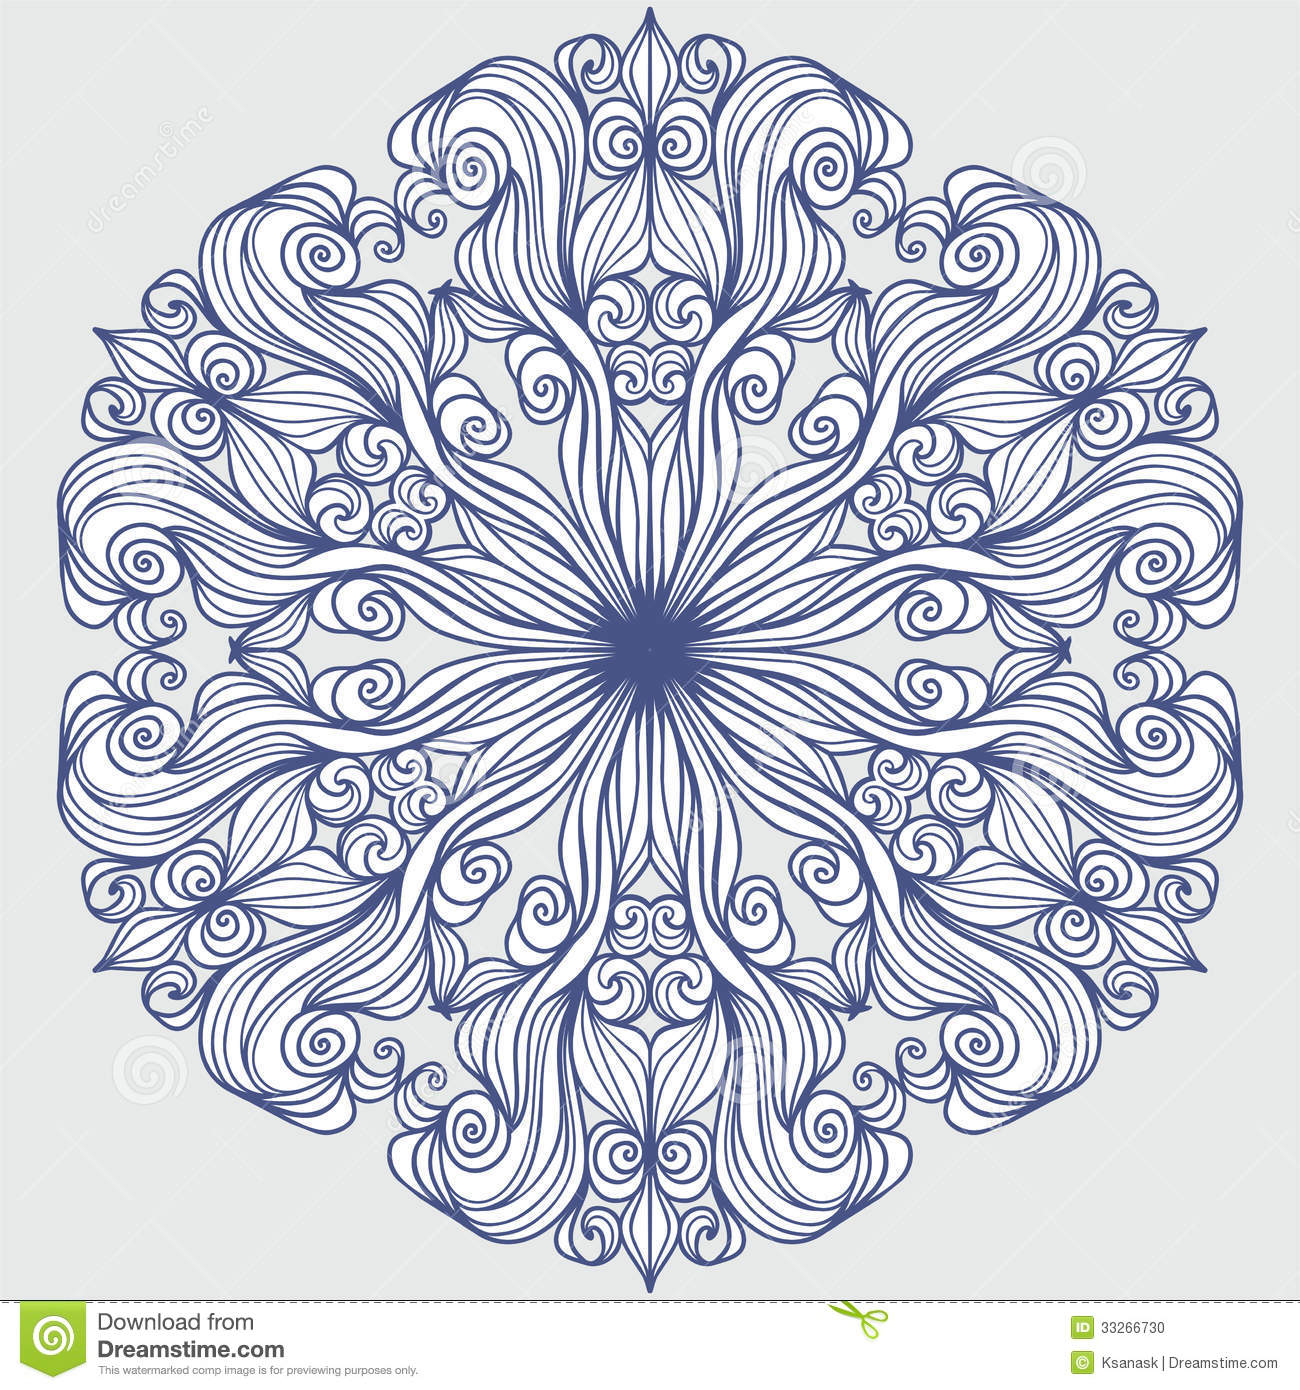 15 Vector Designs To Color Images